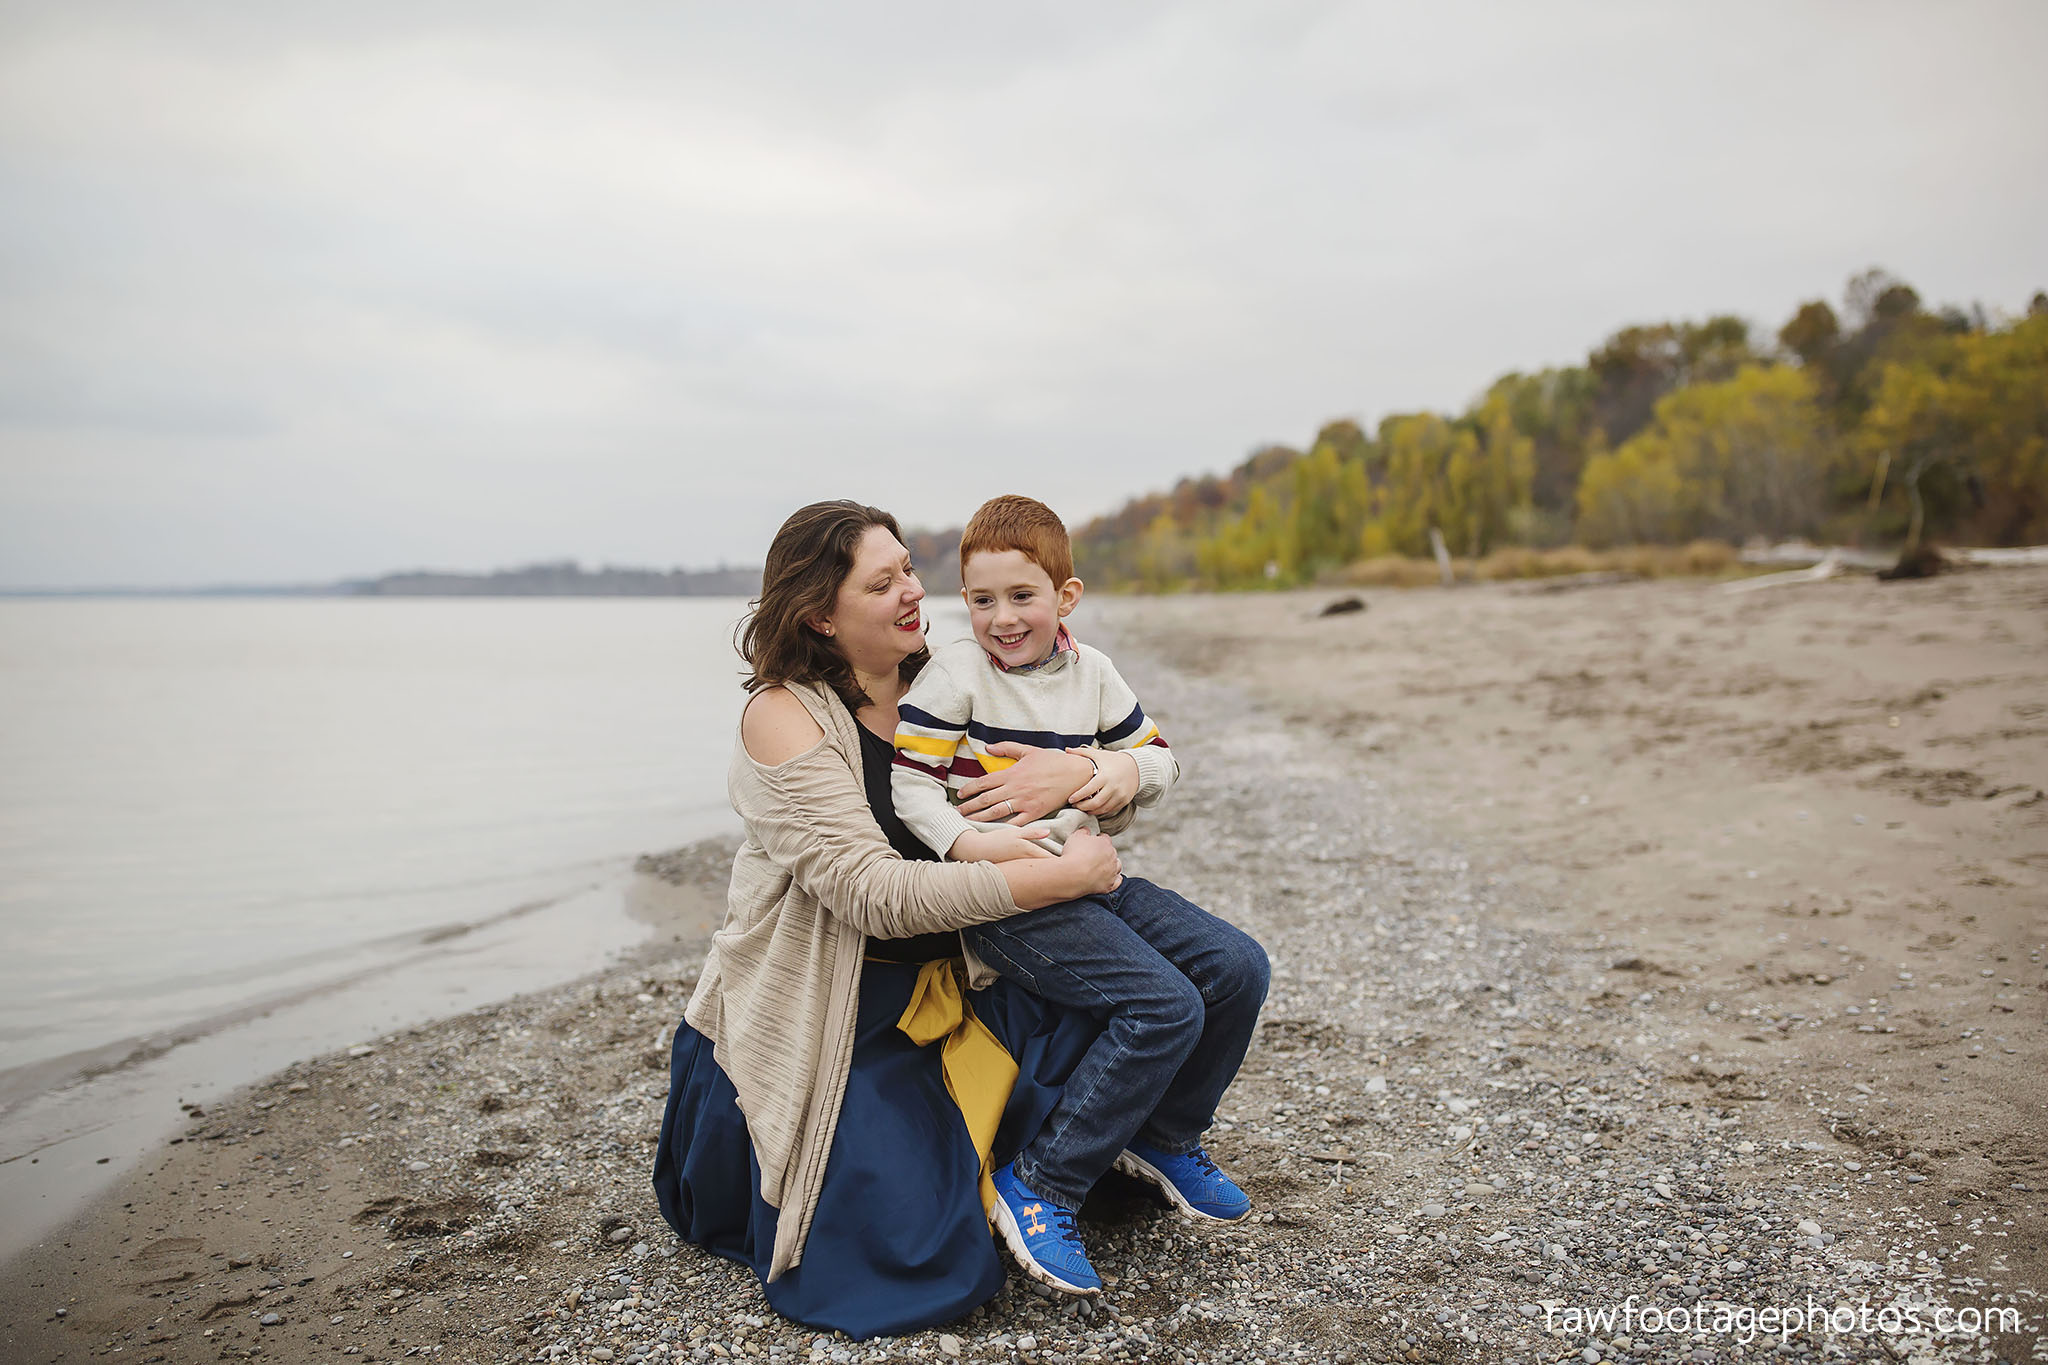 london_ontario_family_photographer-port_stanley_photography-raw_footage_photography-family_photos-beach_photos-fall_family_photos-lifestyle_family_photography-candid_photographer015.jpg